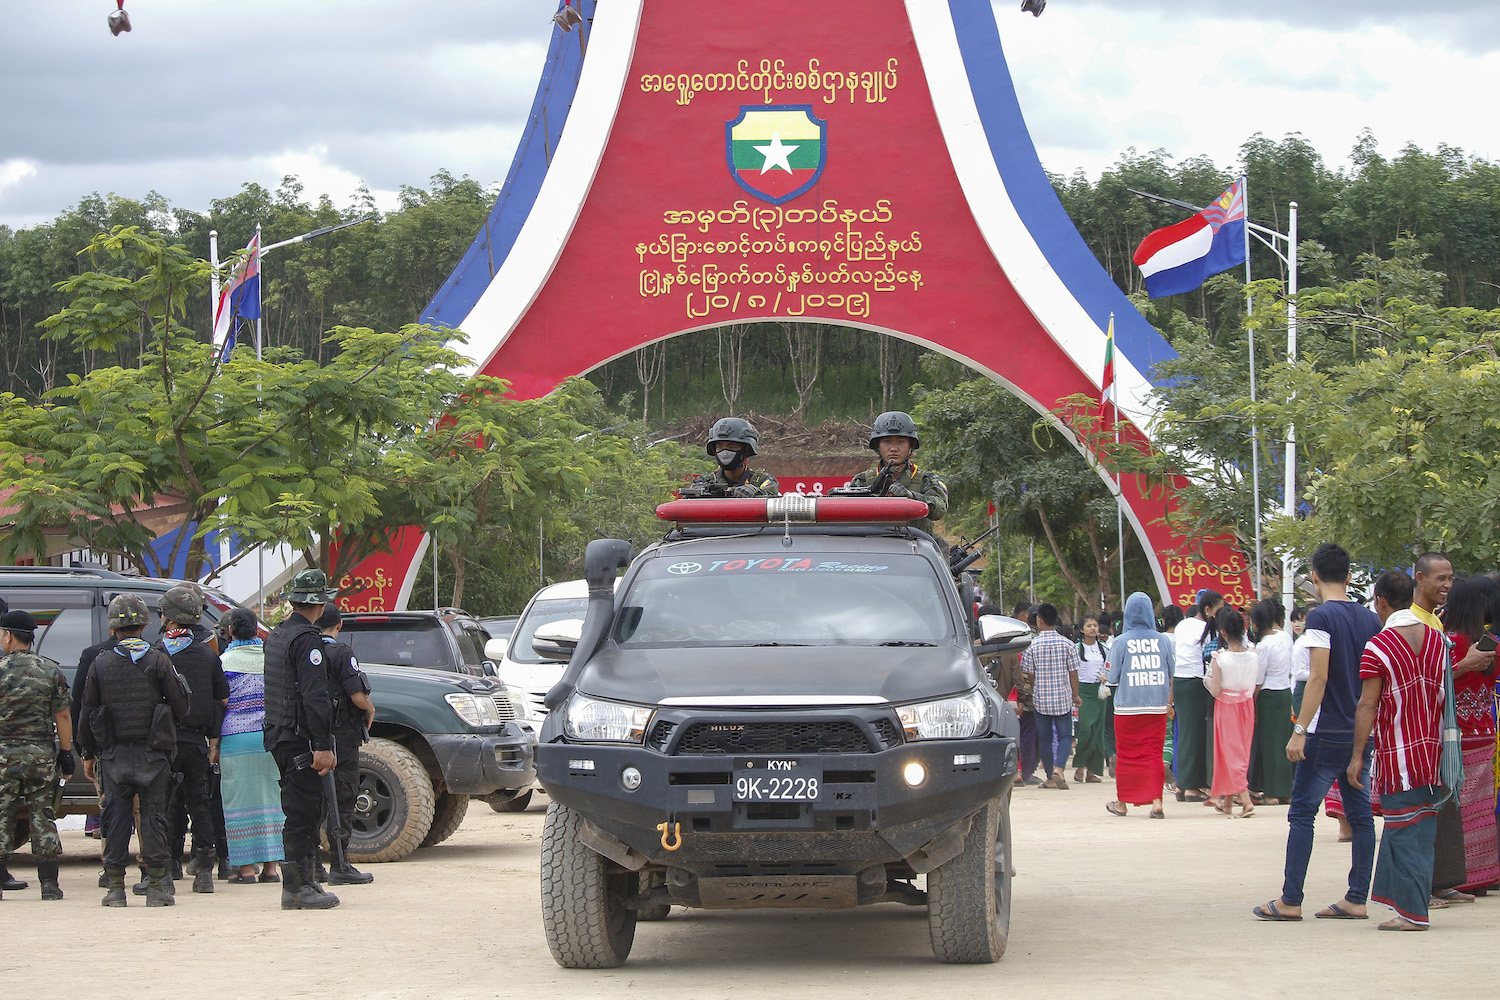 A car carrying Kayin State Border Guard Force soldiers passes under an archway at the parade ground in Shwe Kokko, Myawaddy Township, Kayin State in August 2019, when the group was celebrating its ninth anniversary. (Nyein Su Wai Kyaw Soe | Frontier)